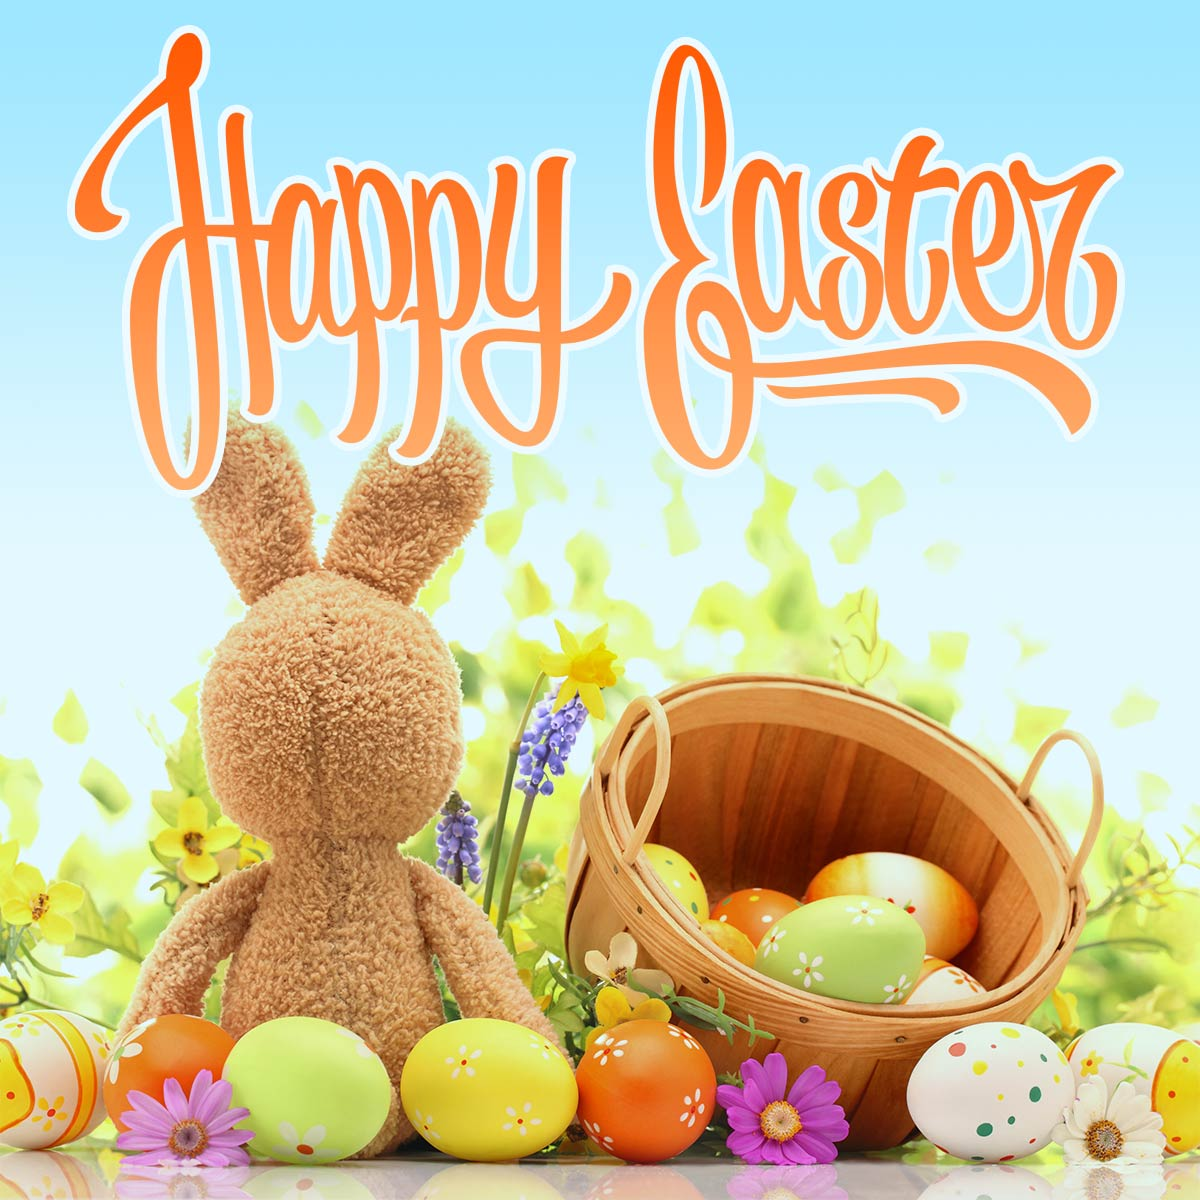 Happy Easter Day Lettering Card with Bunny and Eggs